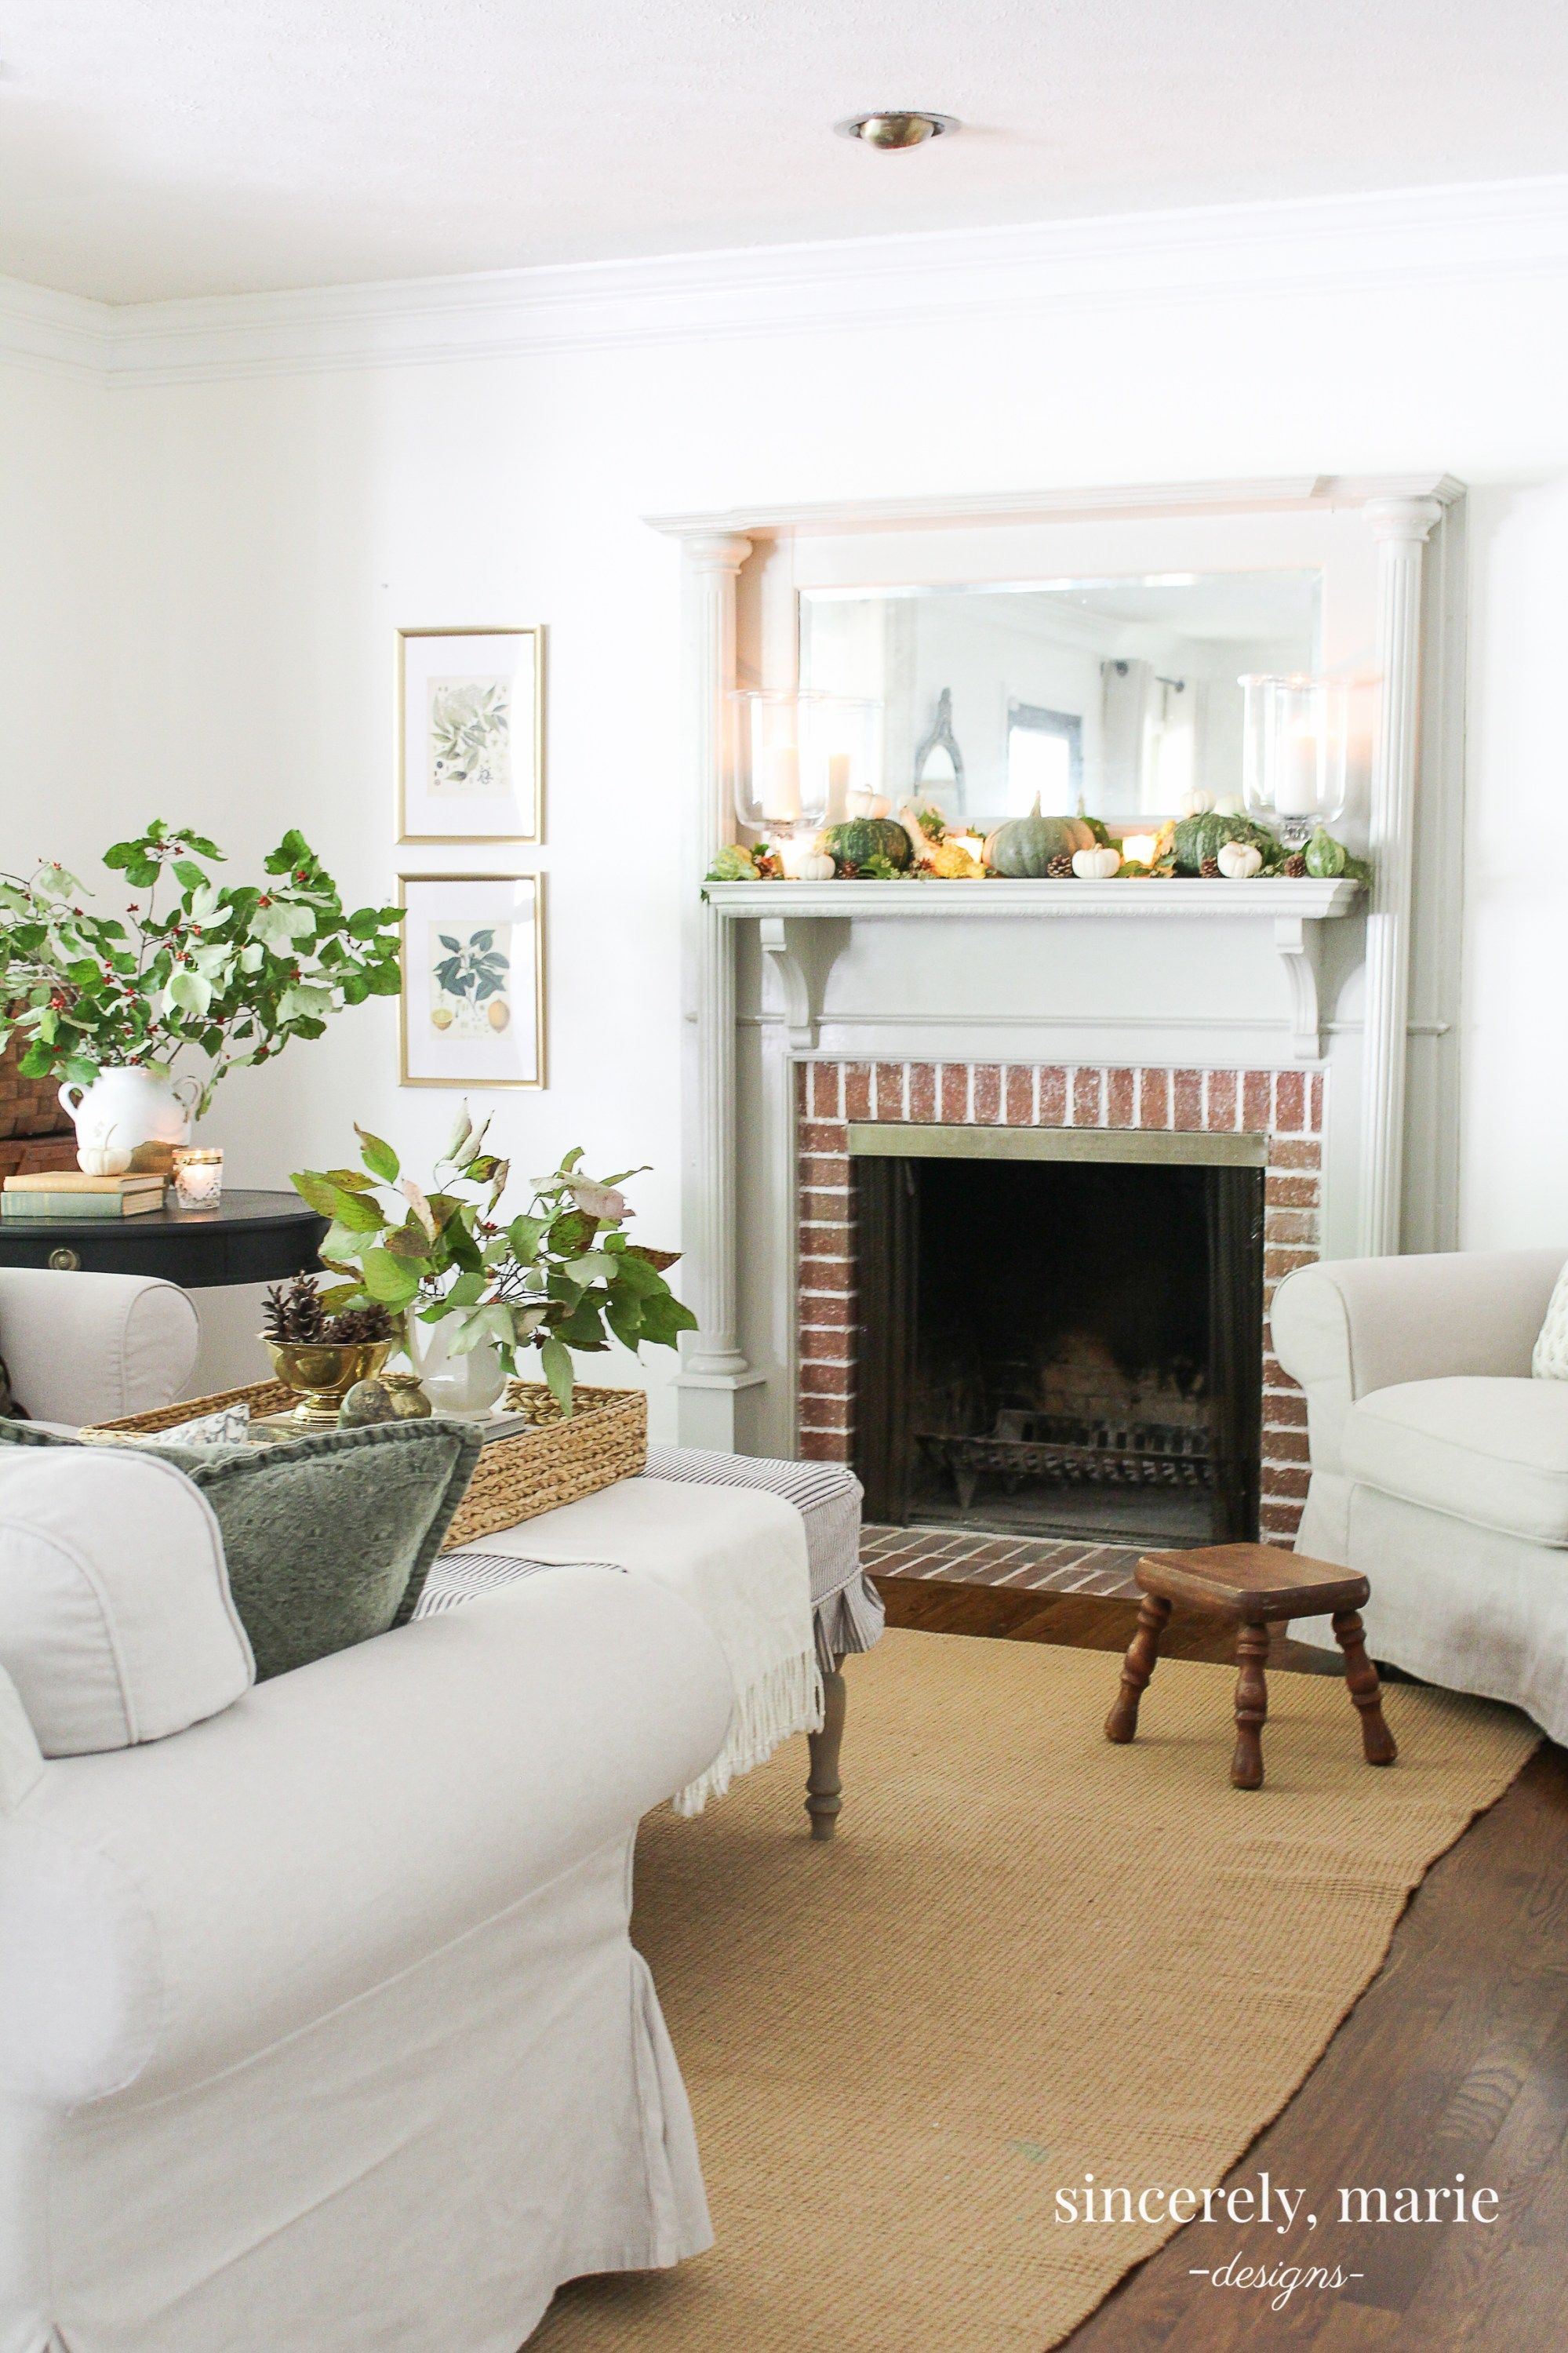 Seasonal simplicity fall home tour sincerely marie designs